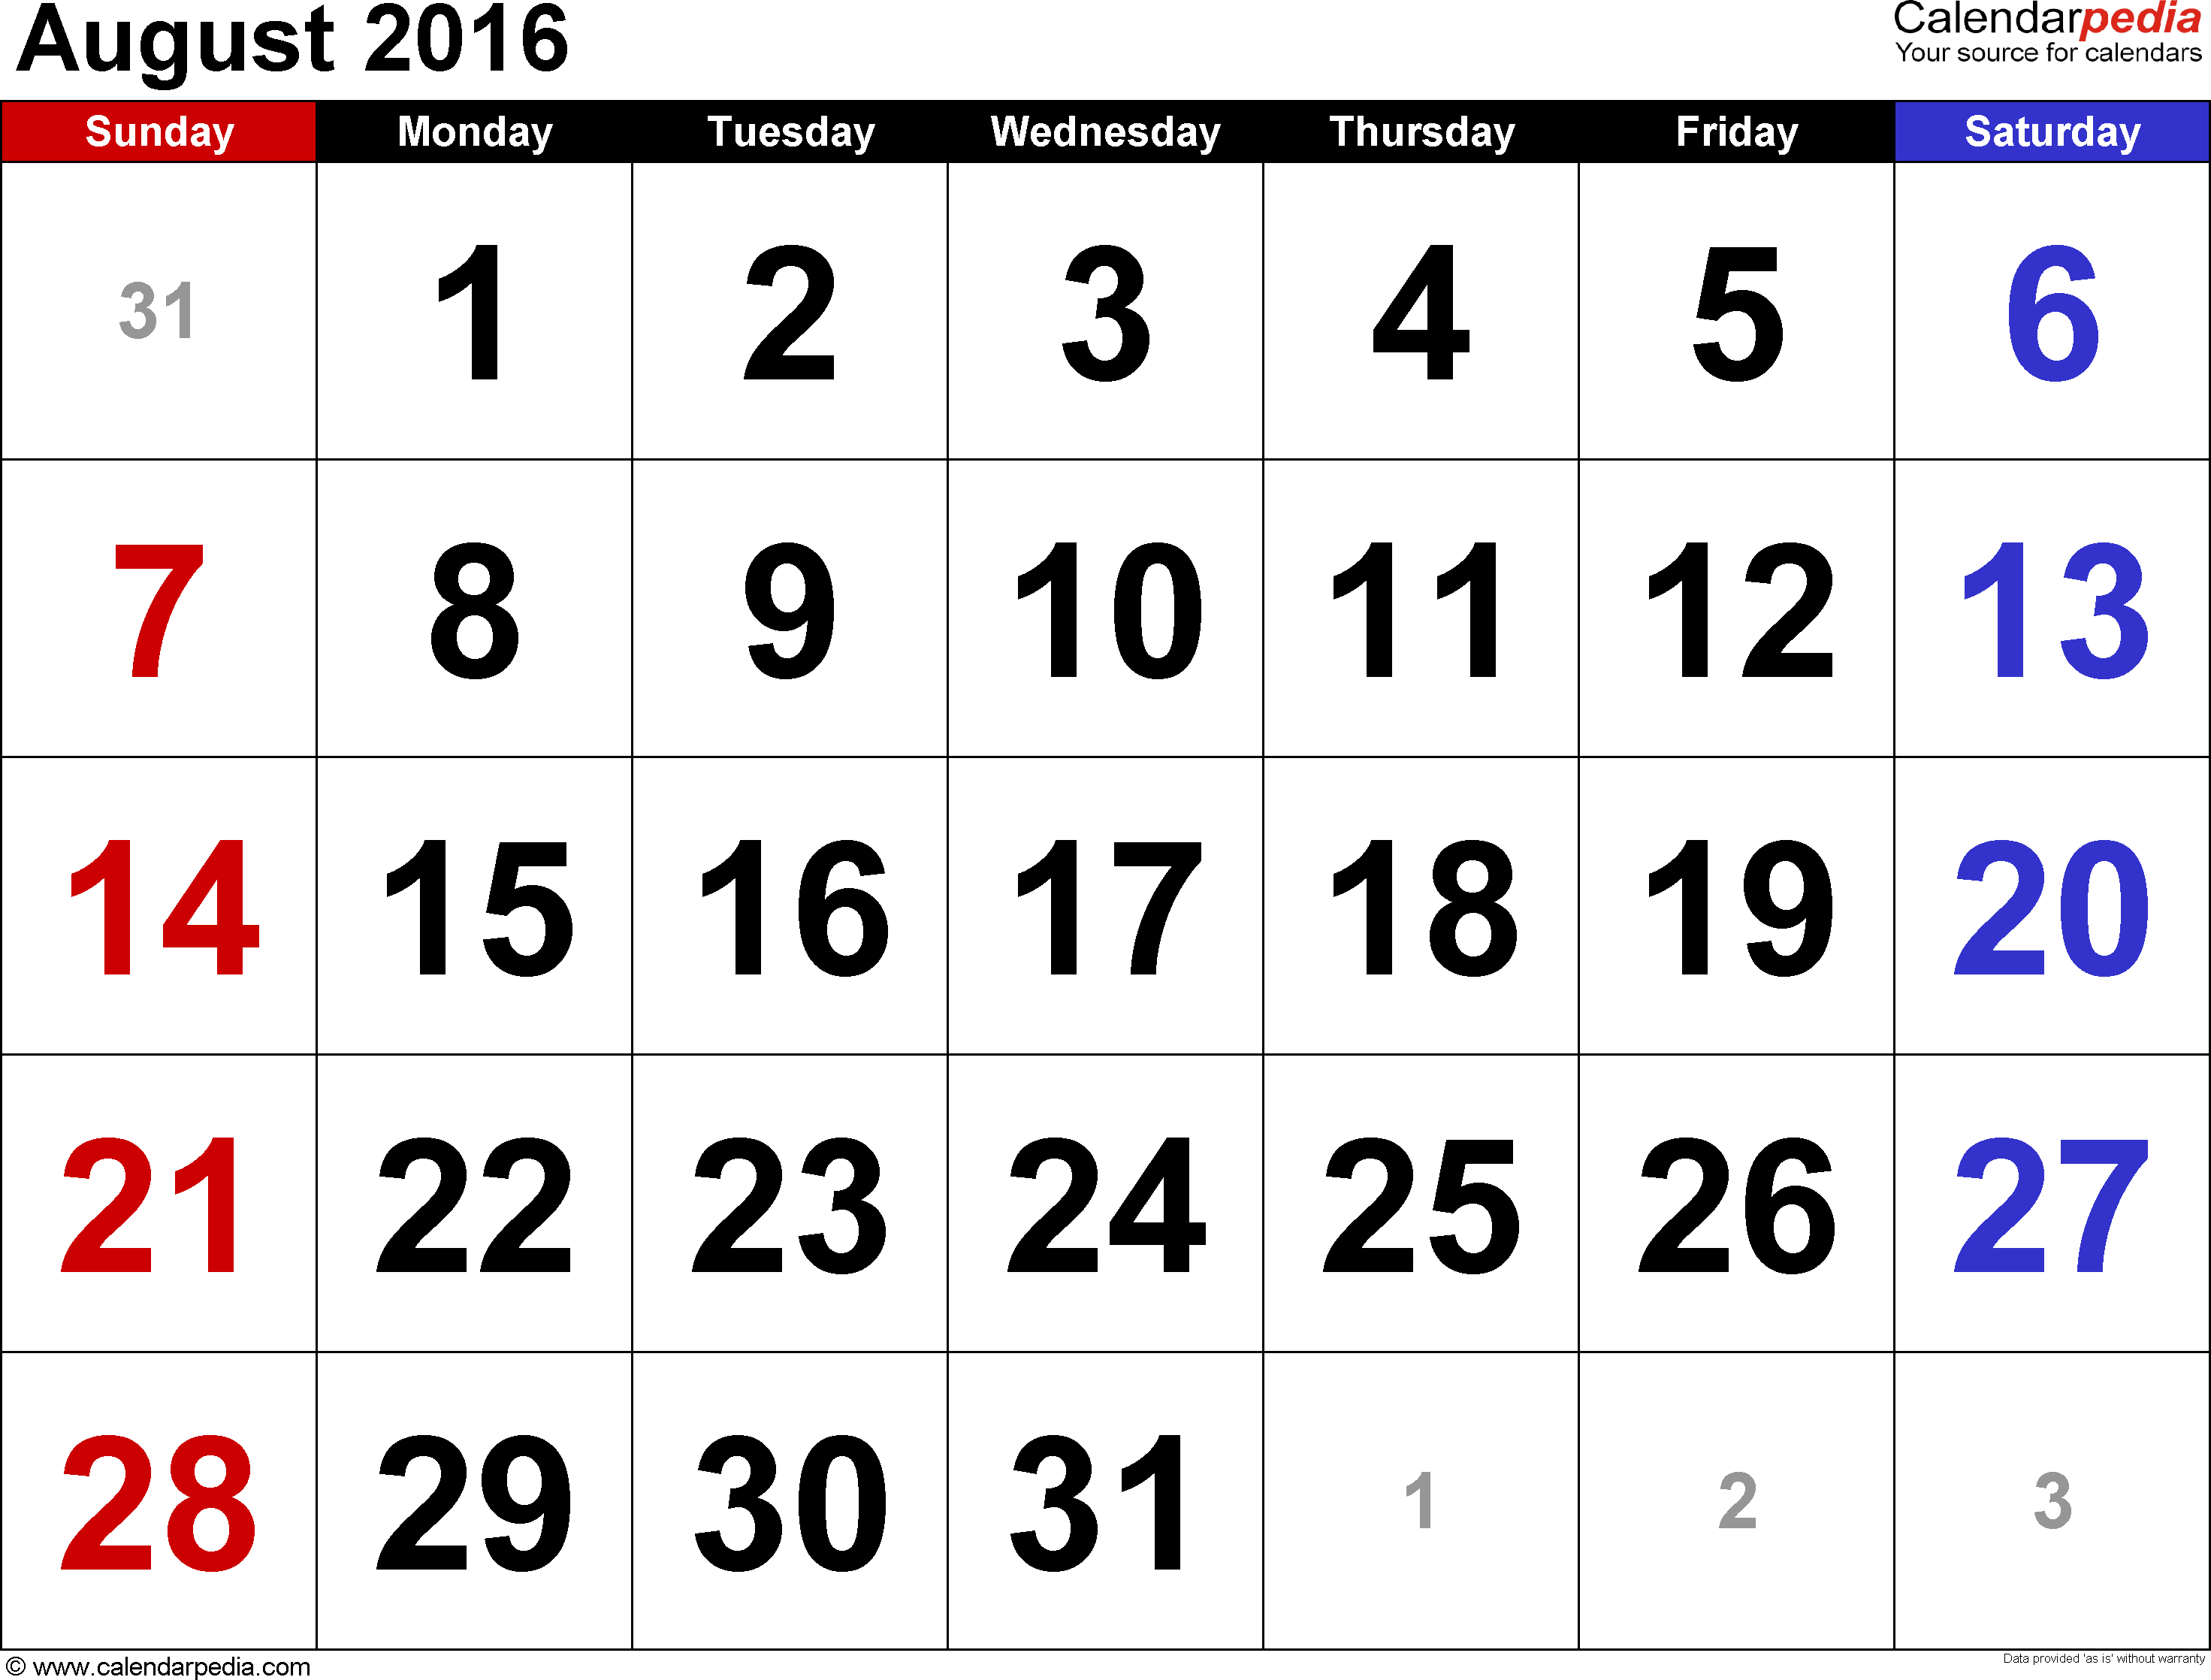 August 2016 calendar, landscape orientation, large numerals, available as printable templates for Word, Excel and PDF